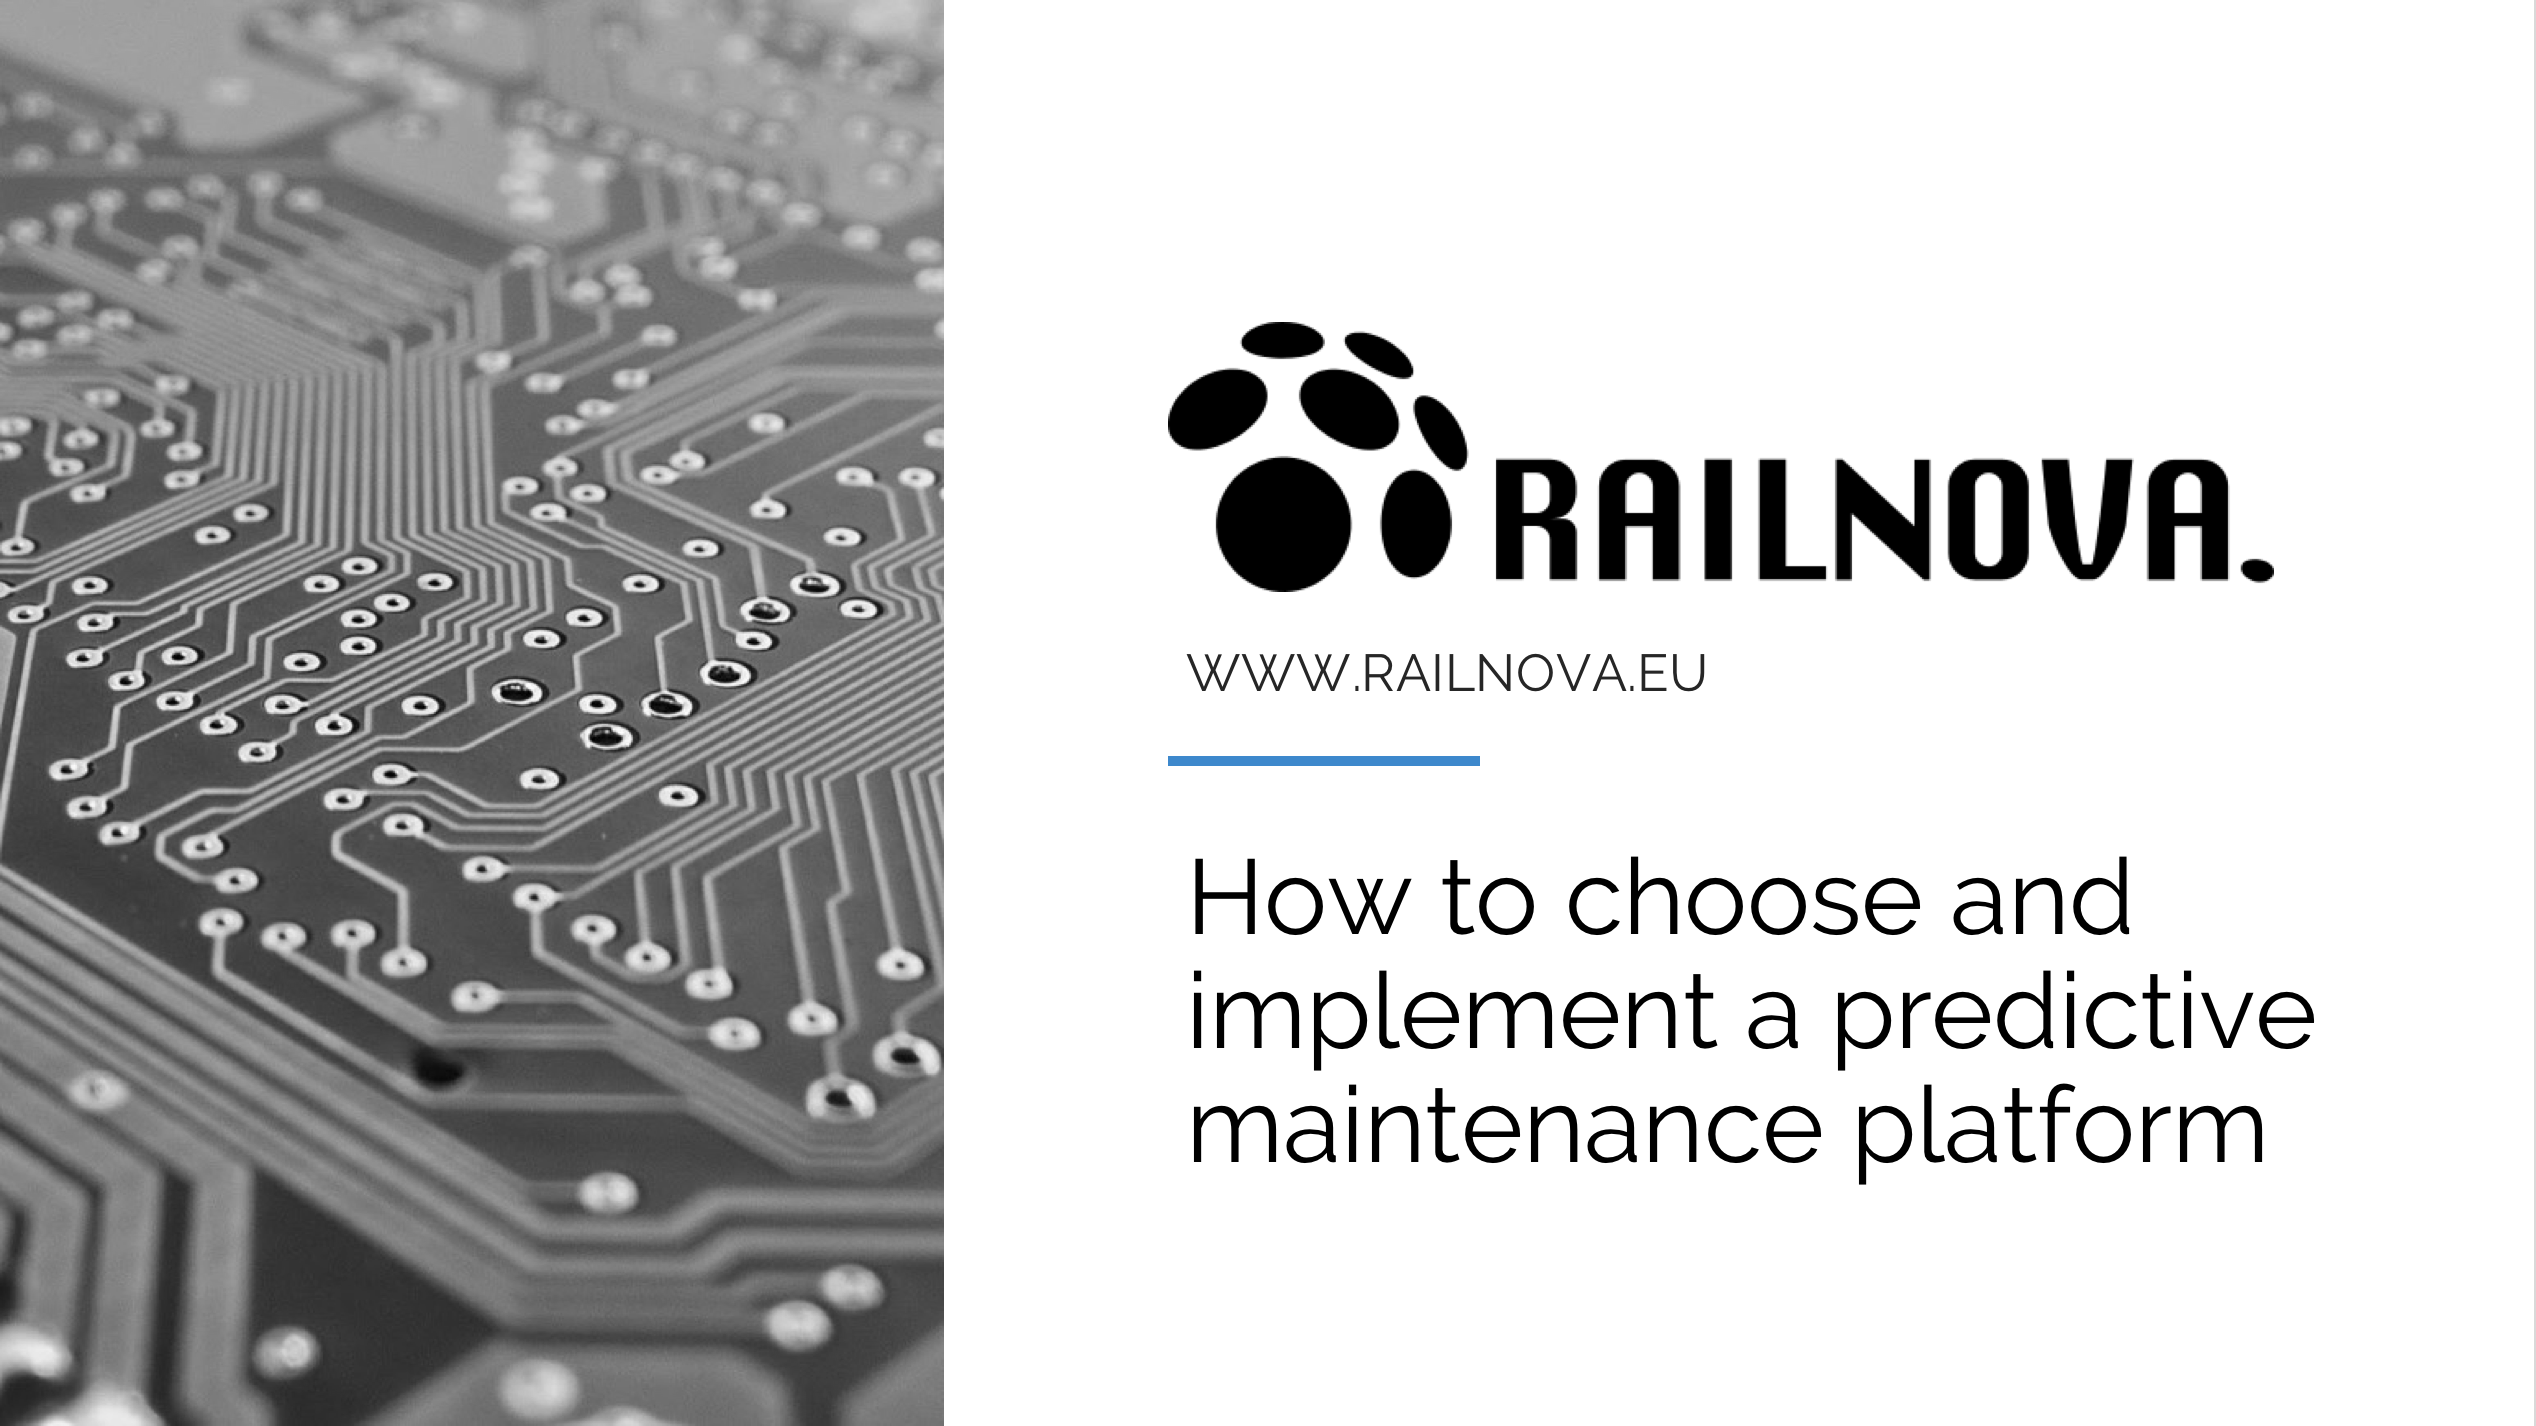 How to choose and implement a predictive maintenance platform